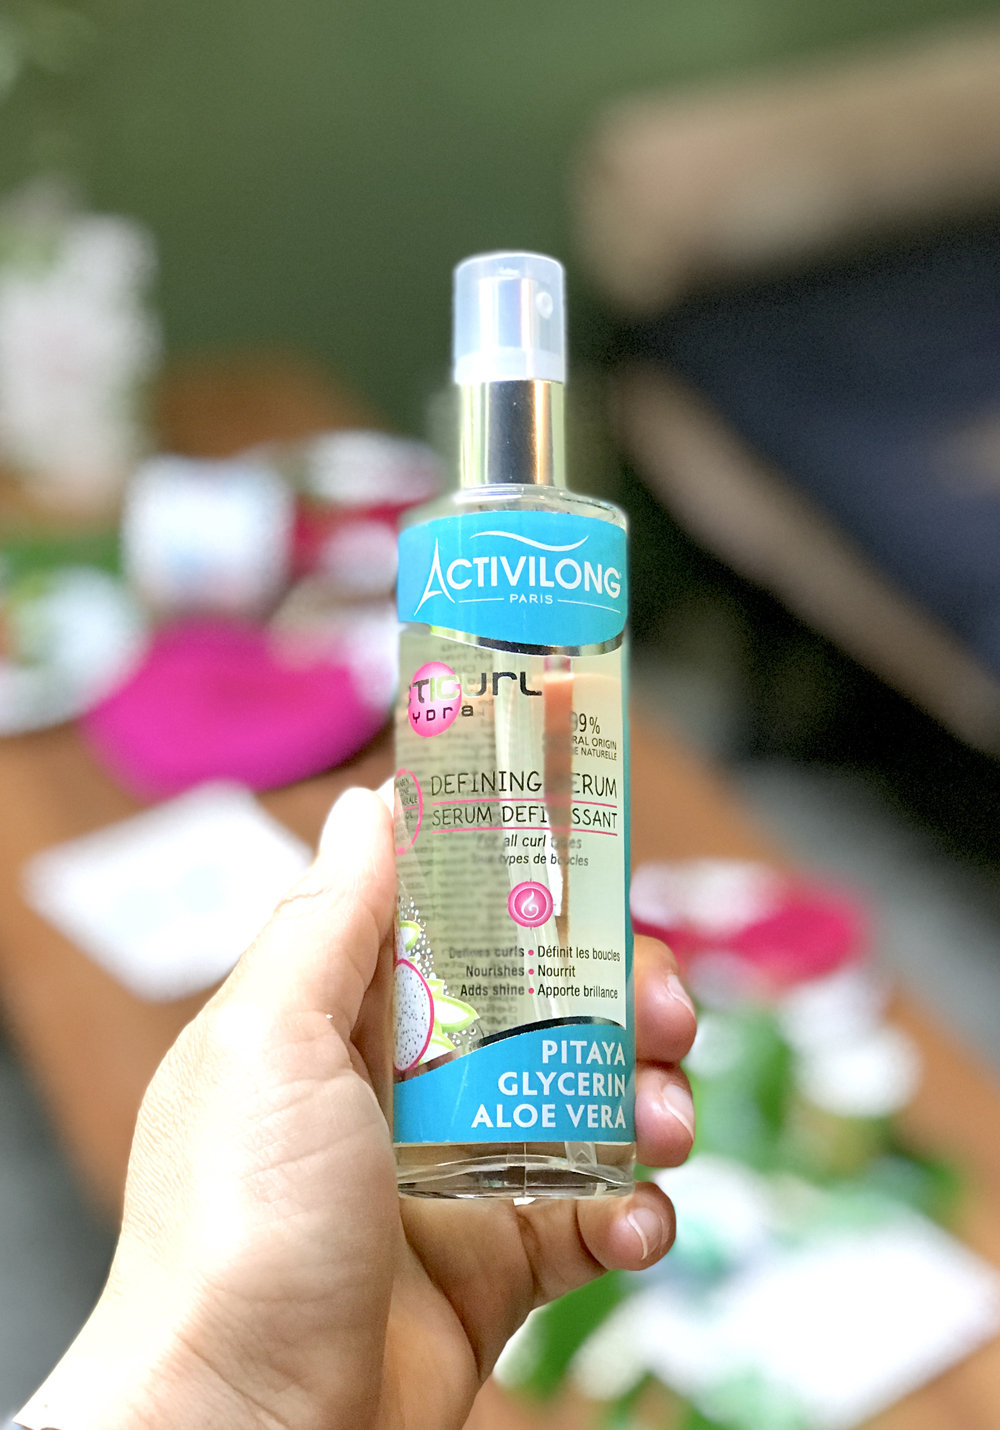 Air Chic Design:disque externe:EXOChic:1 -POSTS:1 - ARTICLES:2018:08- AOUT:03 ACTIVILONG:IMAGE BLOG:nouveaute Acticurl Hydra ACTIVILONG serum 7.jpg